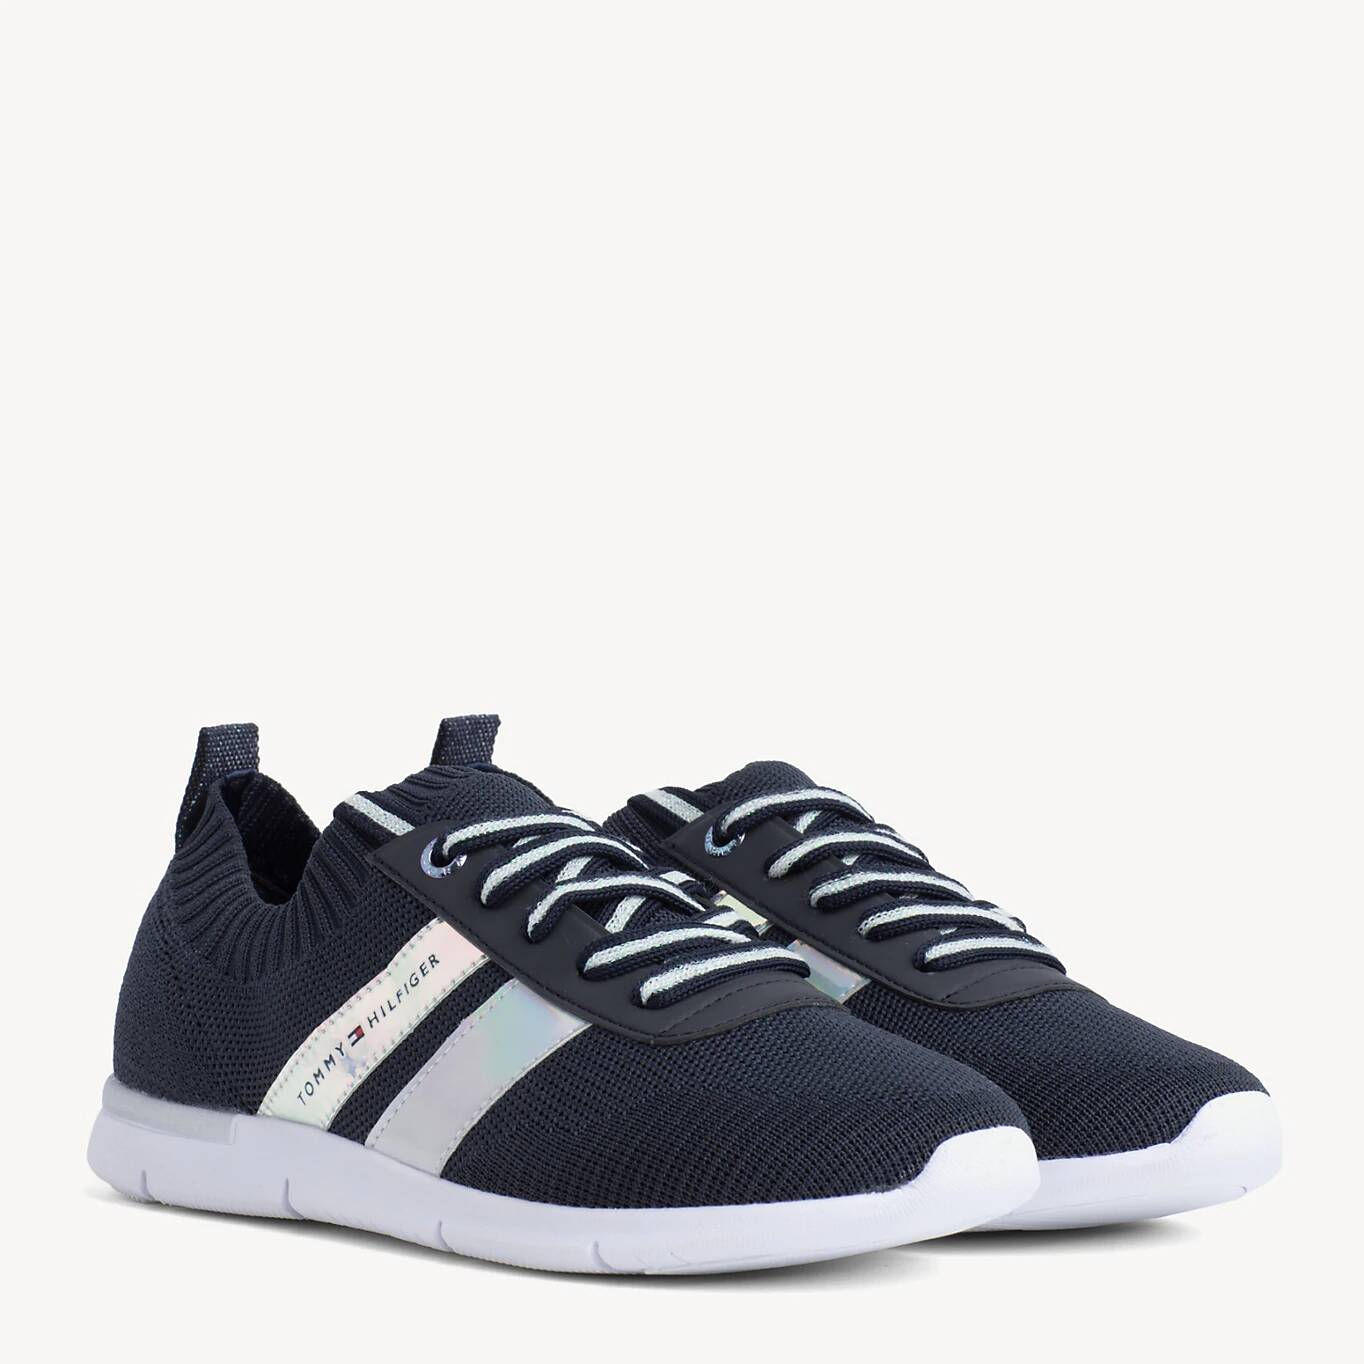 Tommy Hilfiger modré tenisky Corporate Detail Light Sneaker Midnight - 38